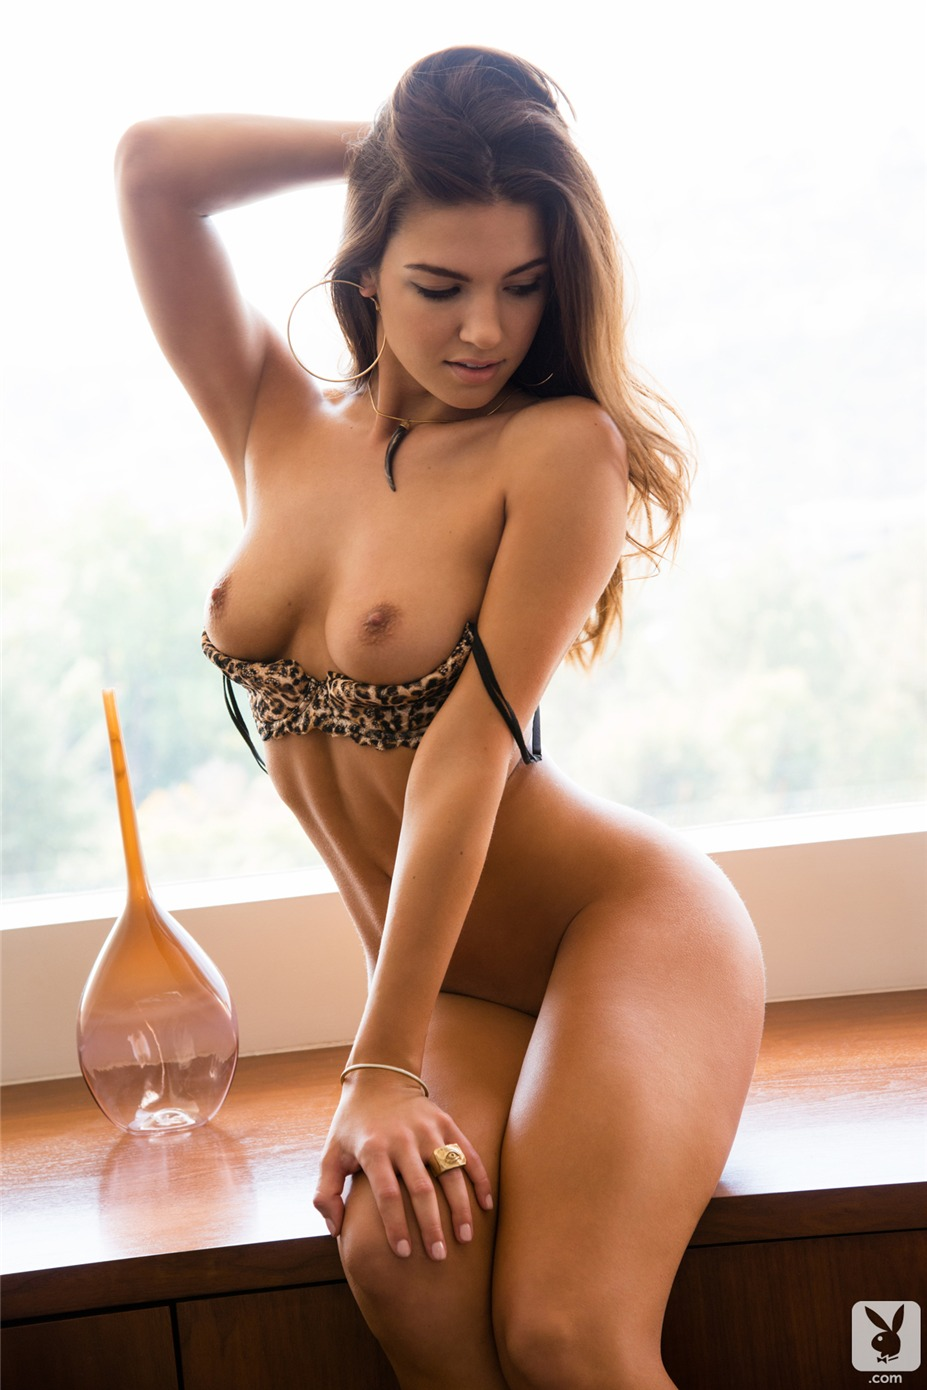 Девушка месяца Jessica Ashley - june 2014 playmate / Playboy USA